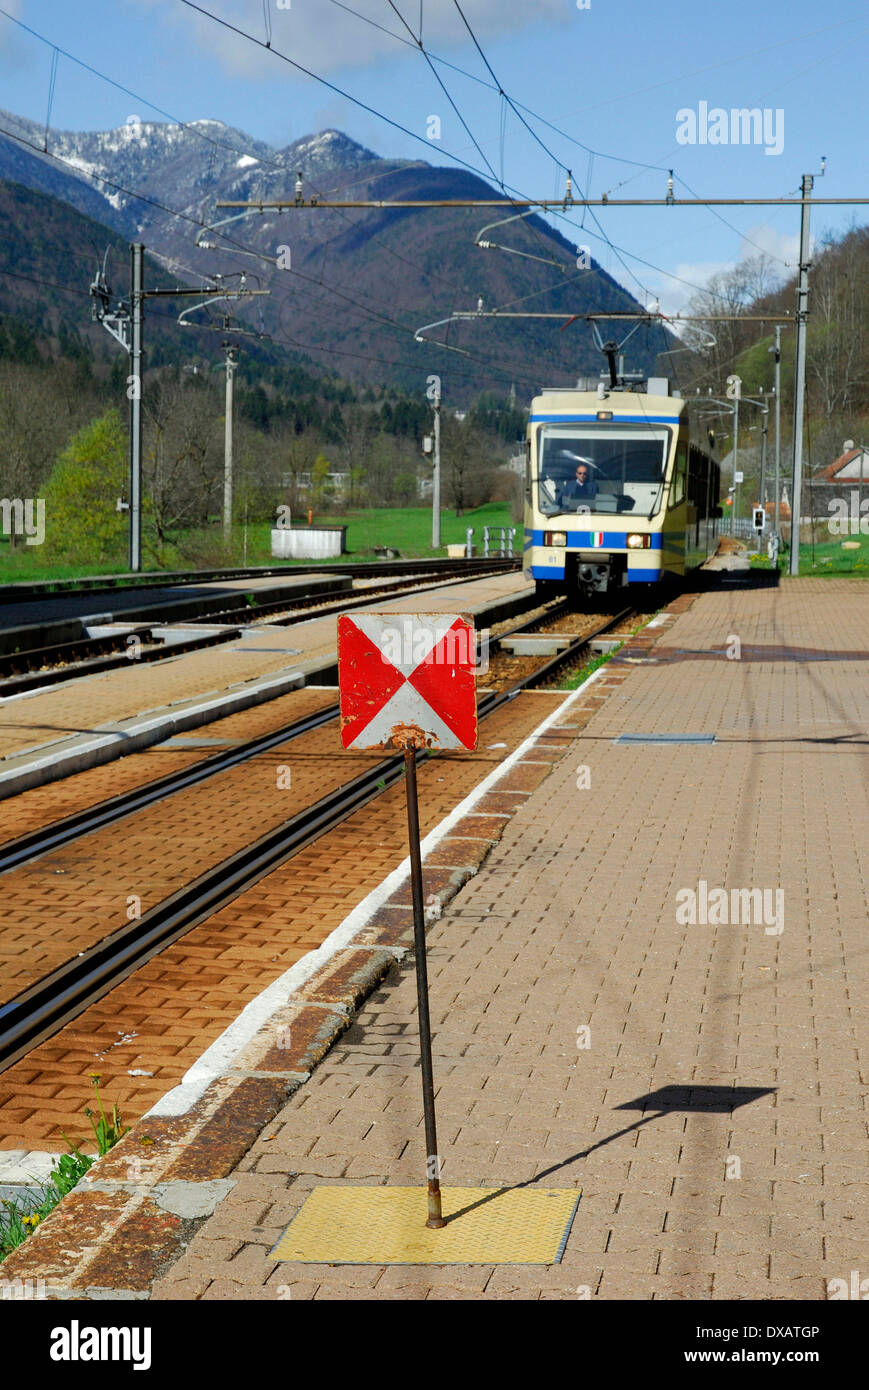 Stop signal, Centovalli Train, Re - Stock Image